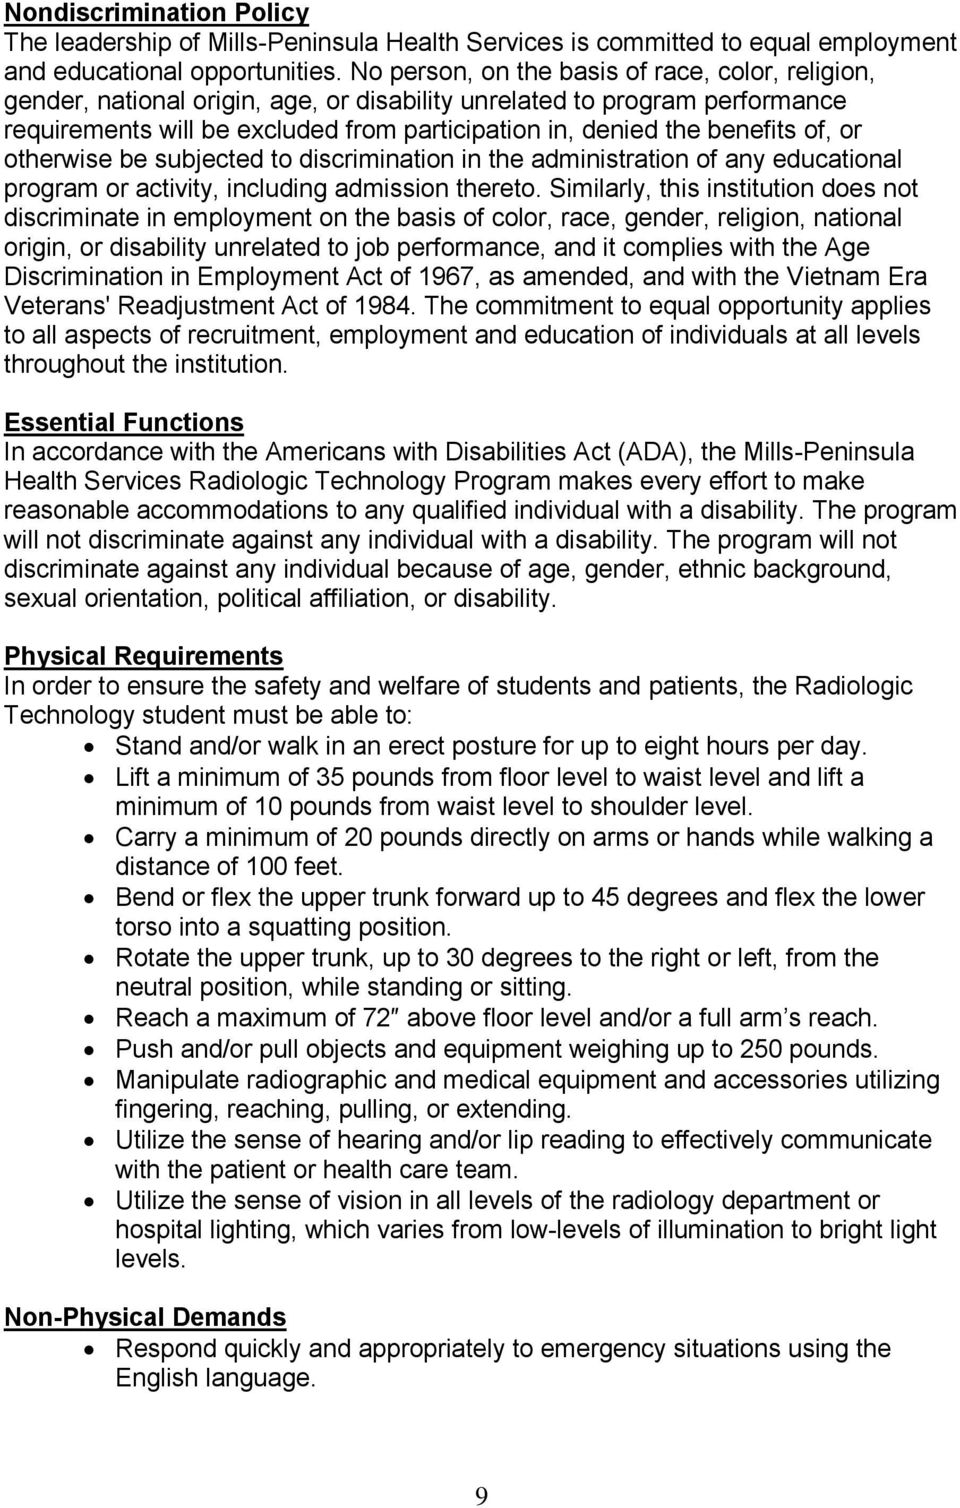 Information Packet  Mills-Peninsula Health Services  School of